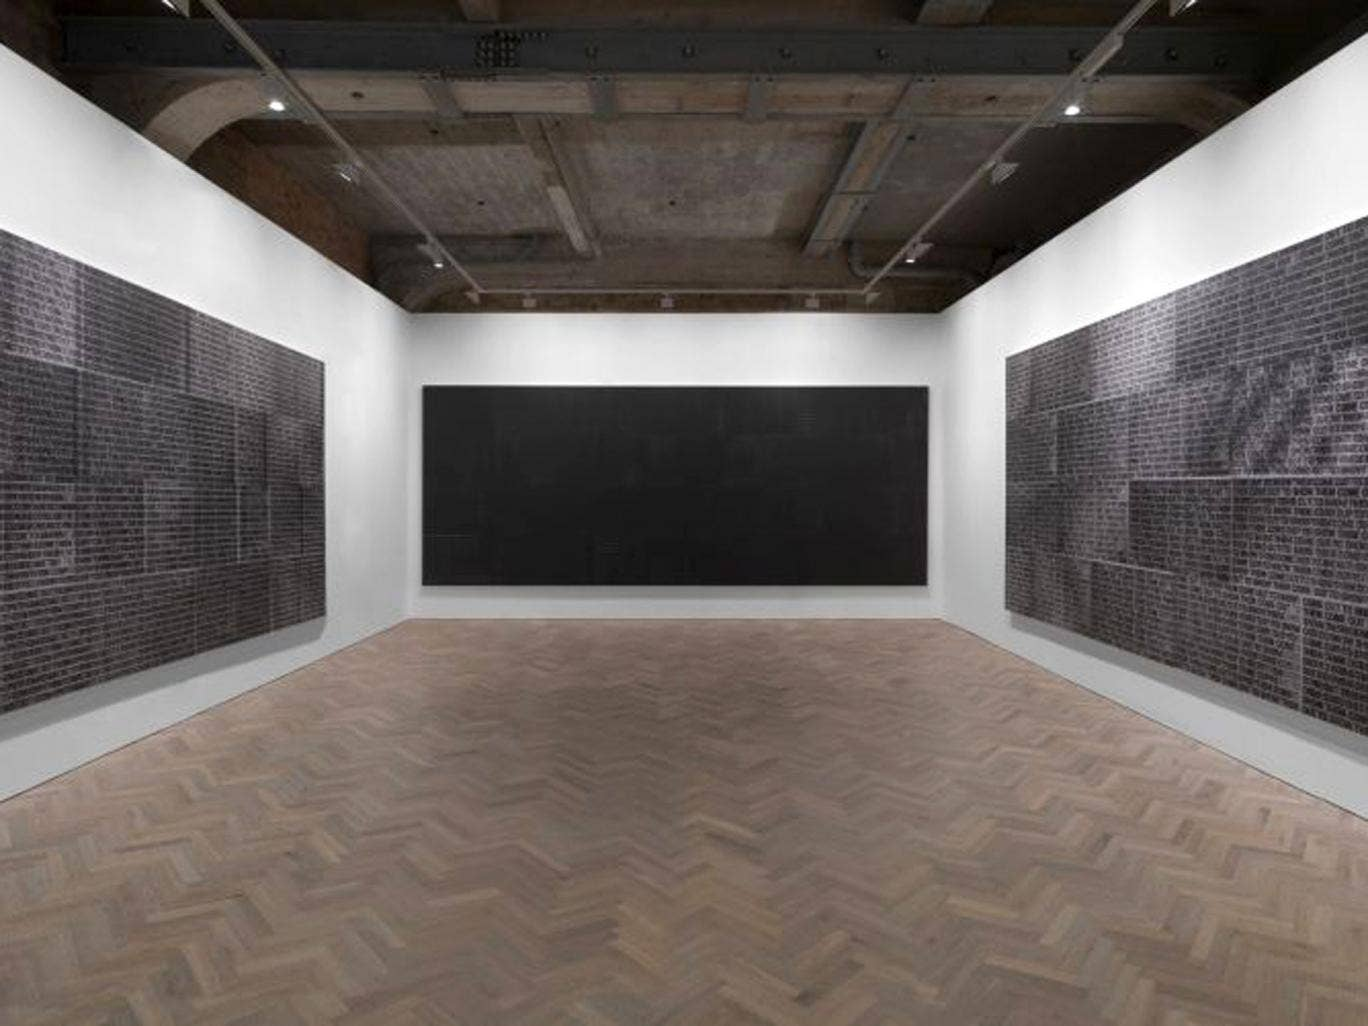 Corridors of power: 'Come Out' by Glenn Ligon